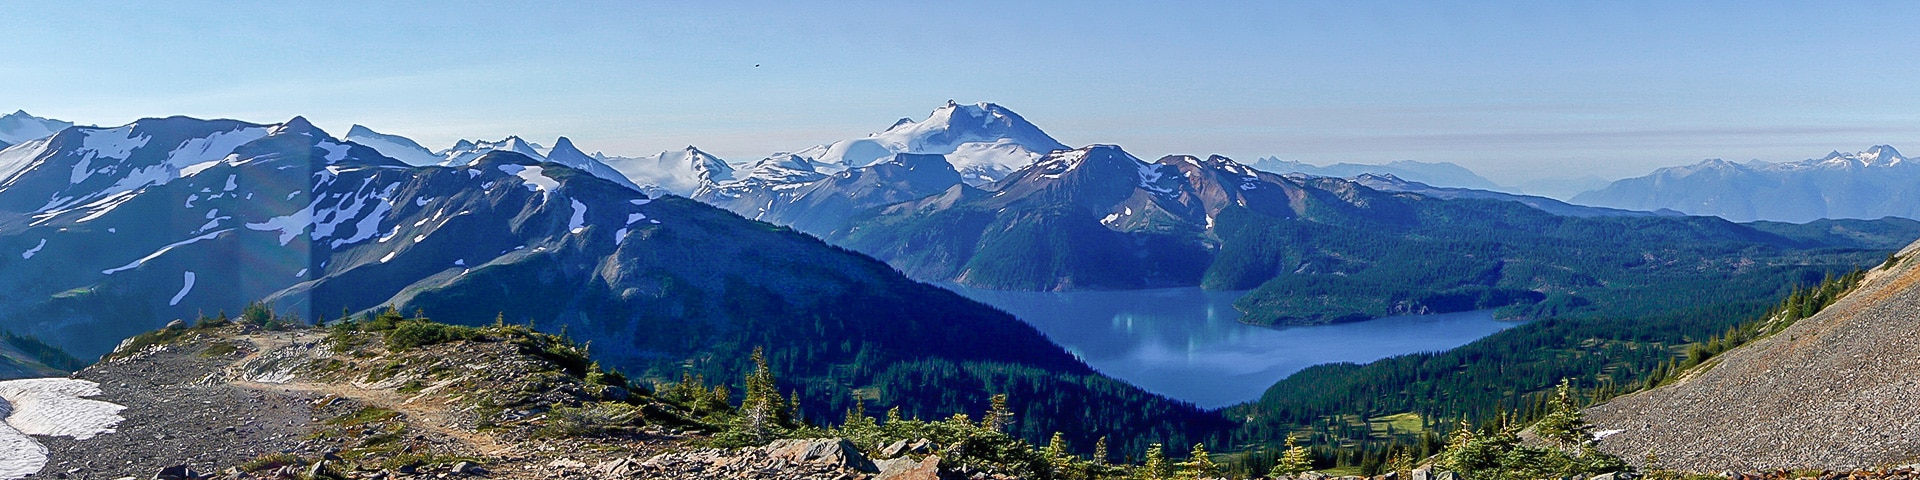 Panoramic views from the Black Tusk hike in Whistler, British Columbia